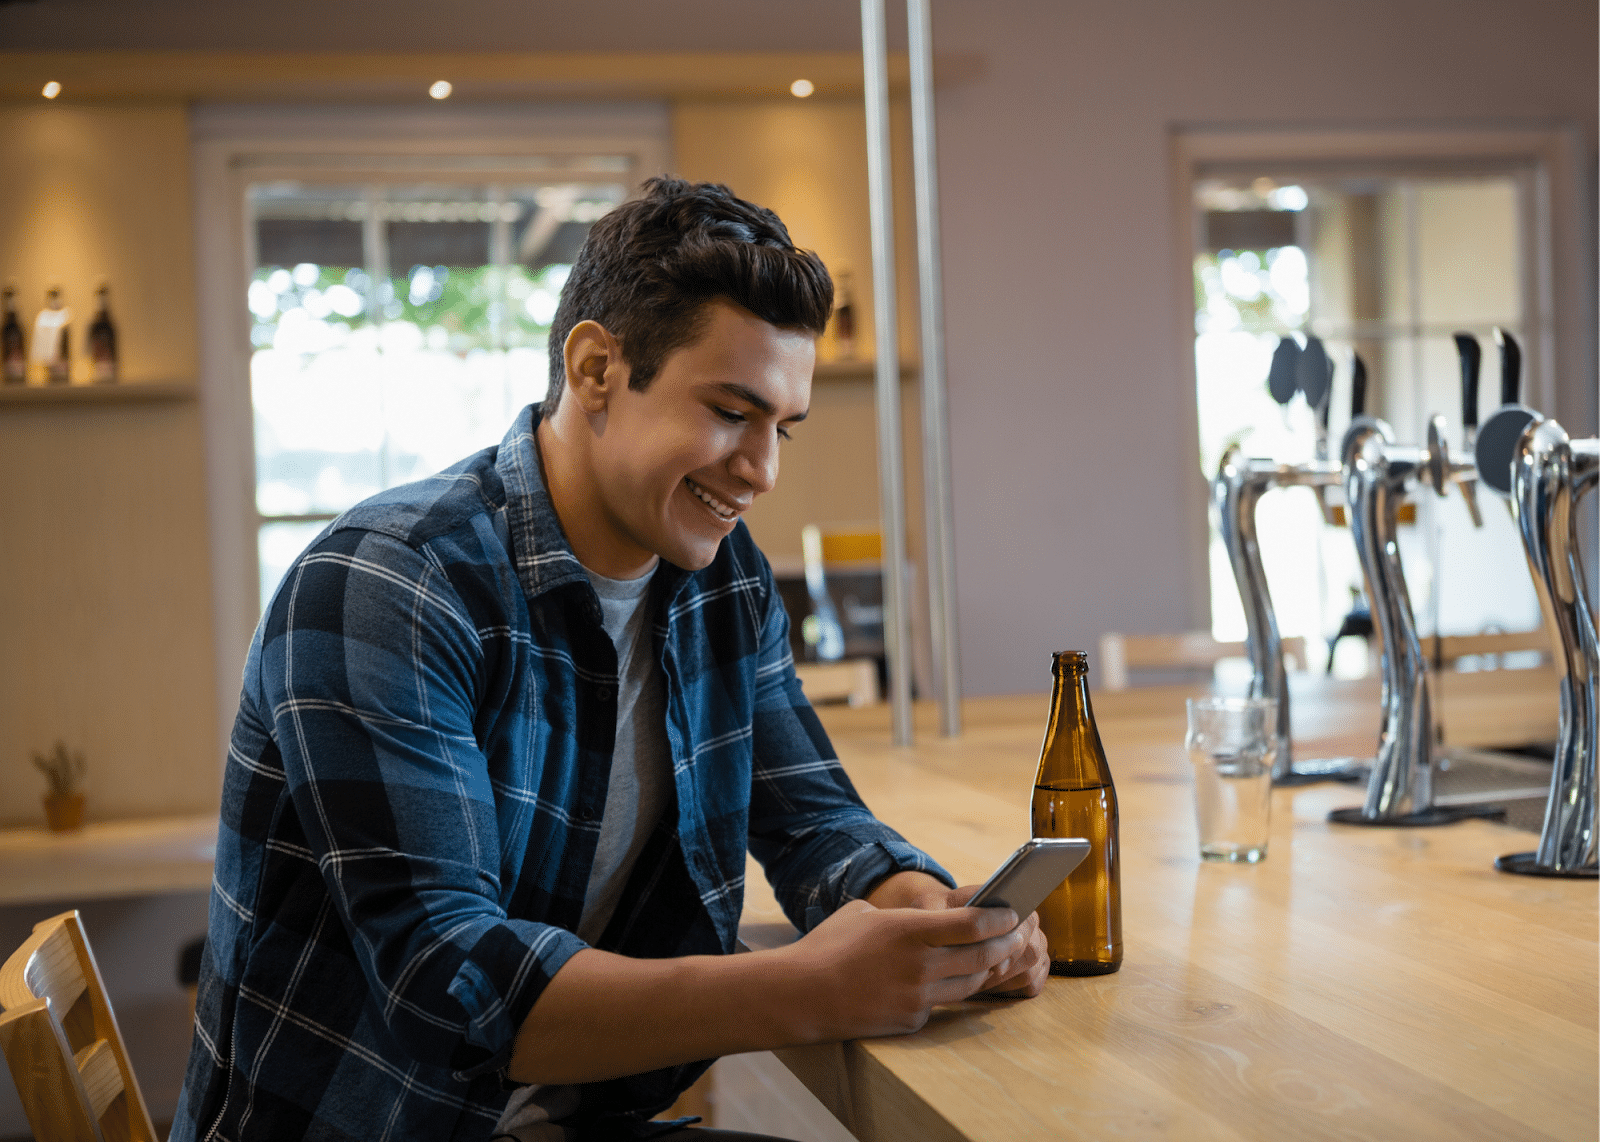 guy in plaid shirt smiling at cell phone